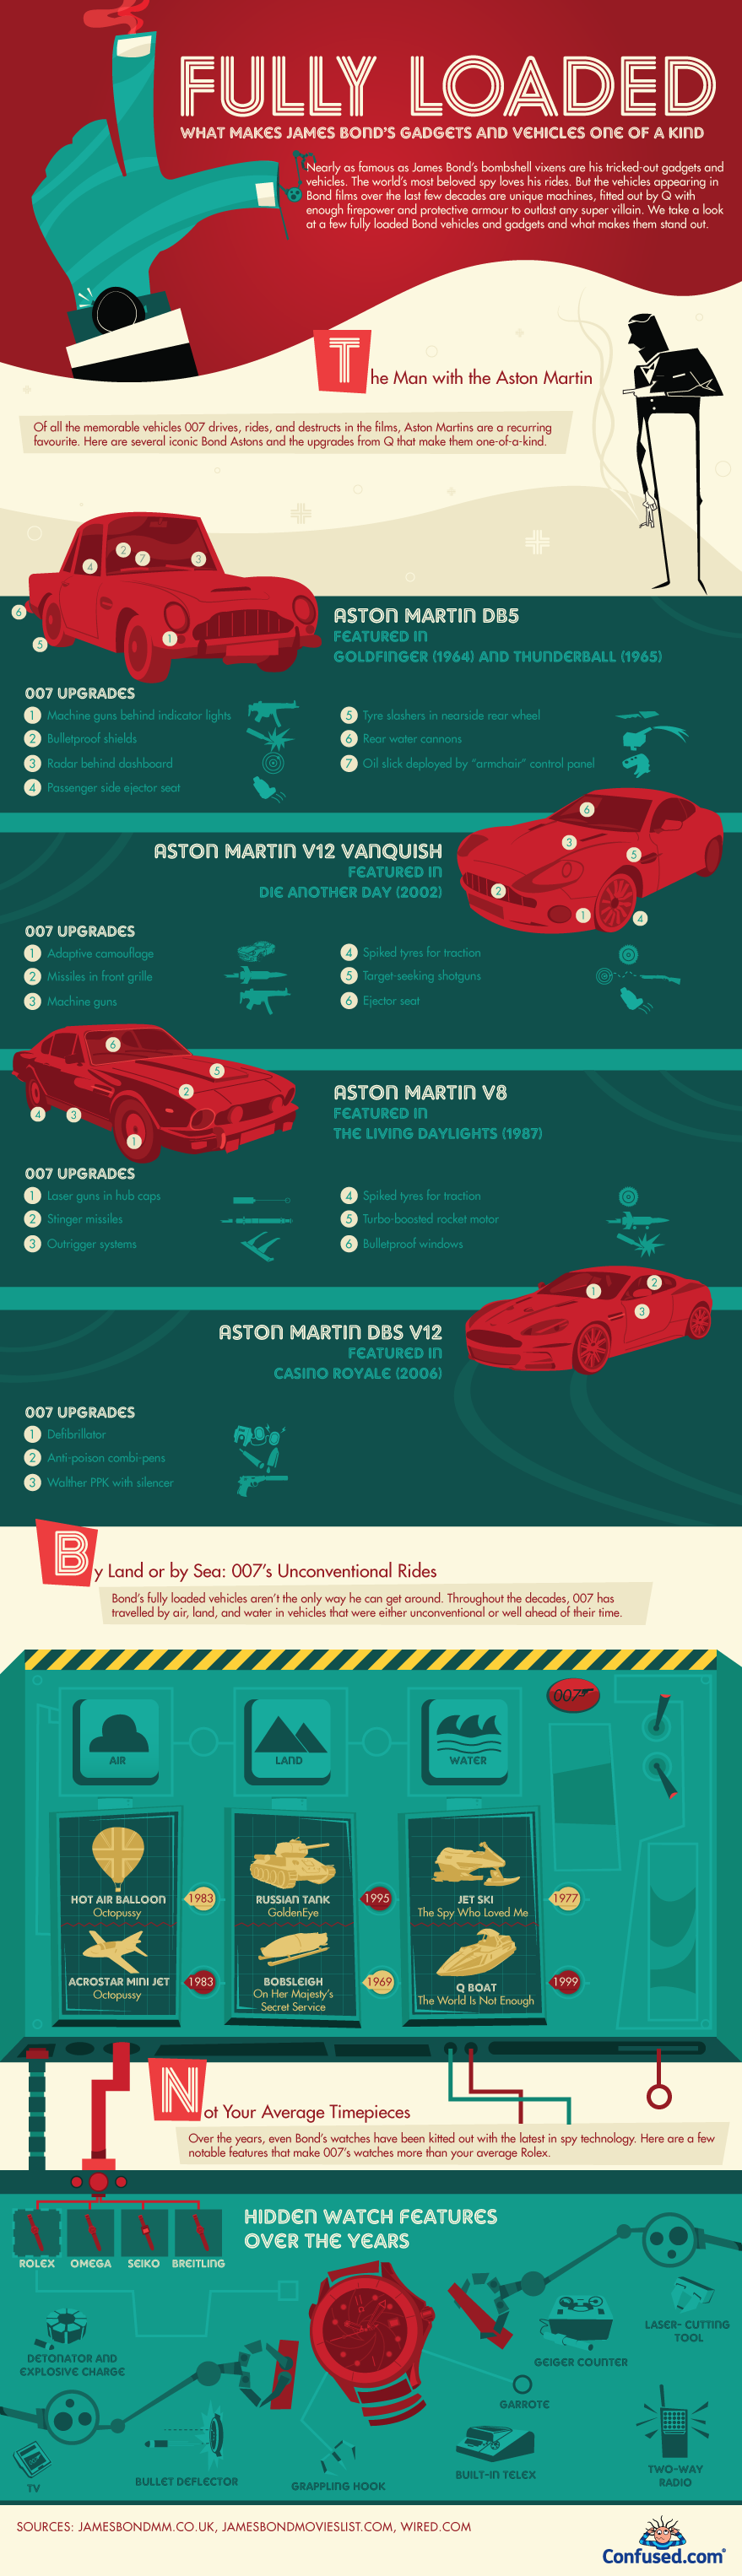 James Bond's Gadgets and Vehicles